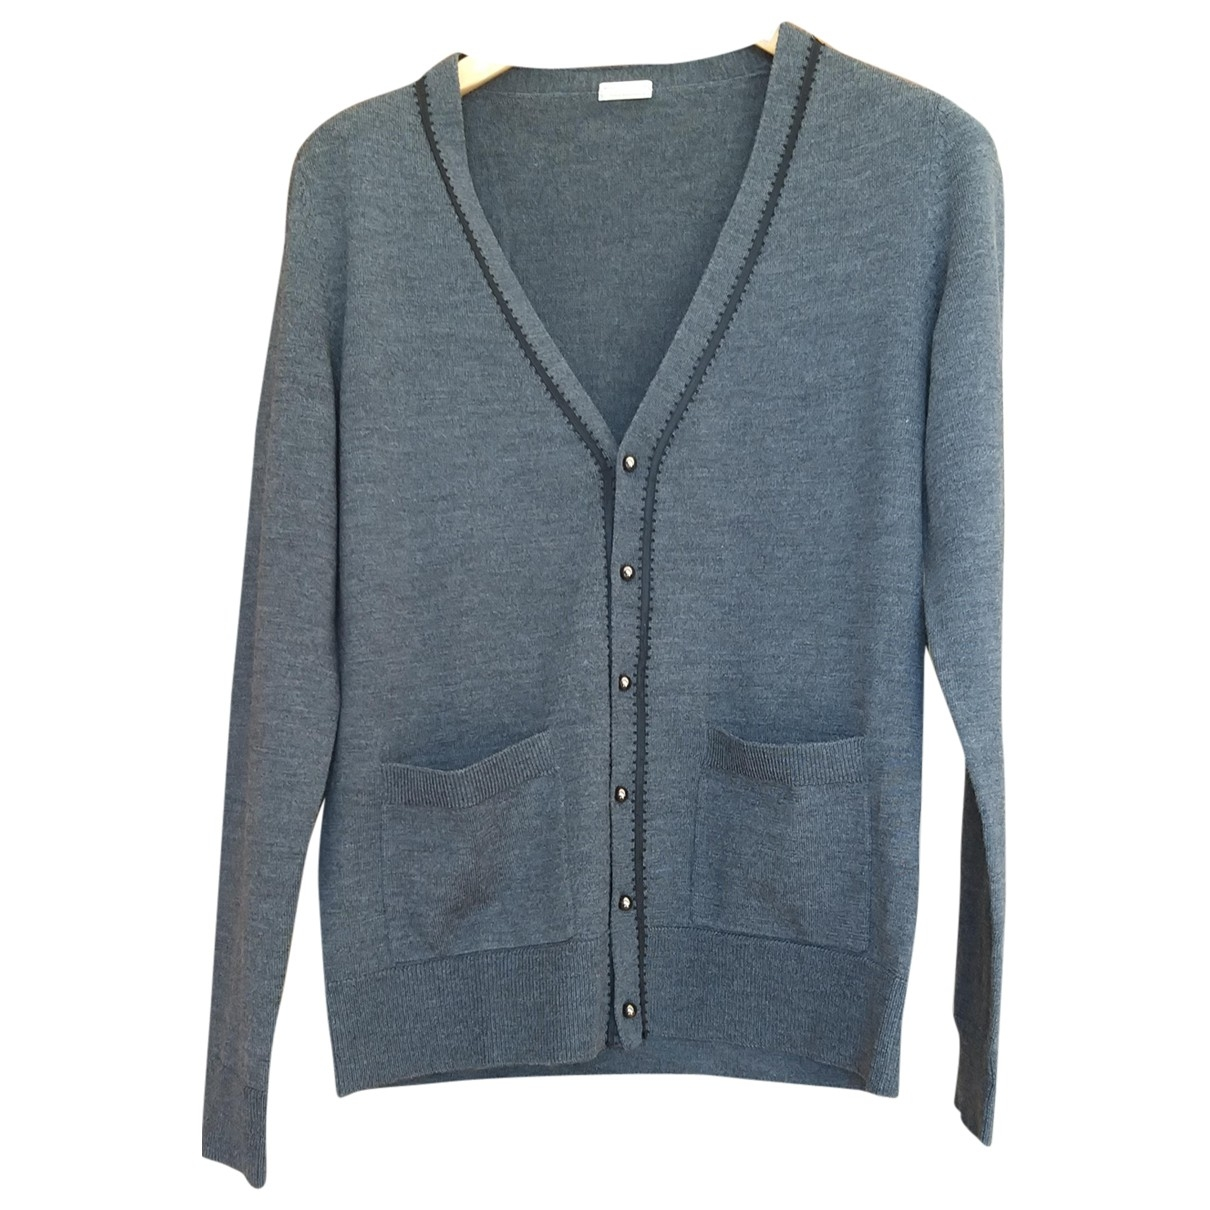 Alexis Mabille \N Pullover in  Grau Wolle